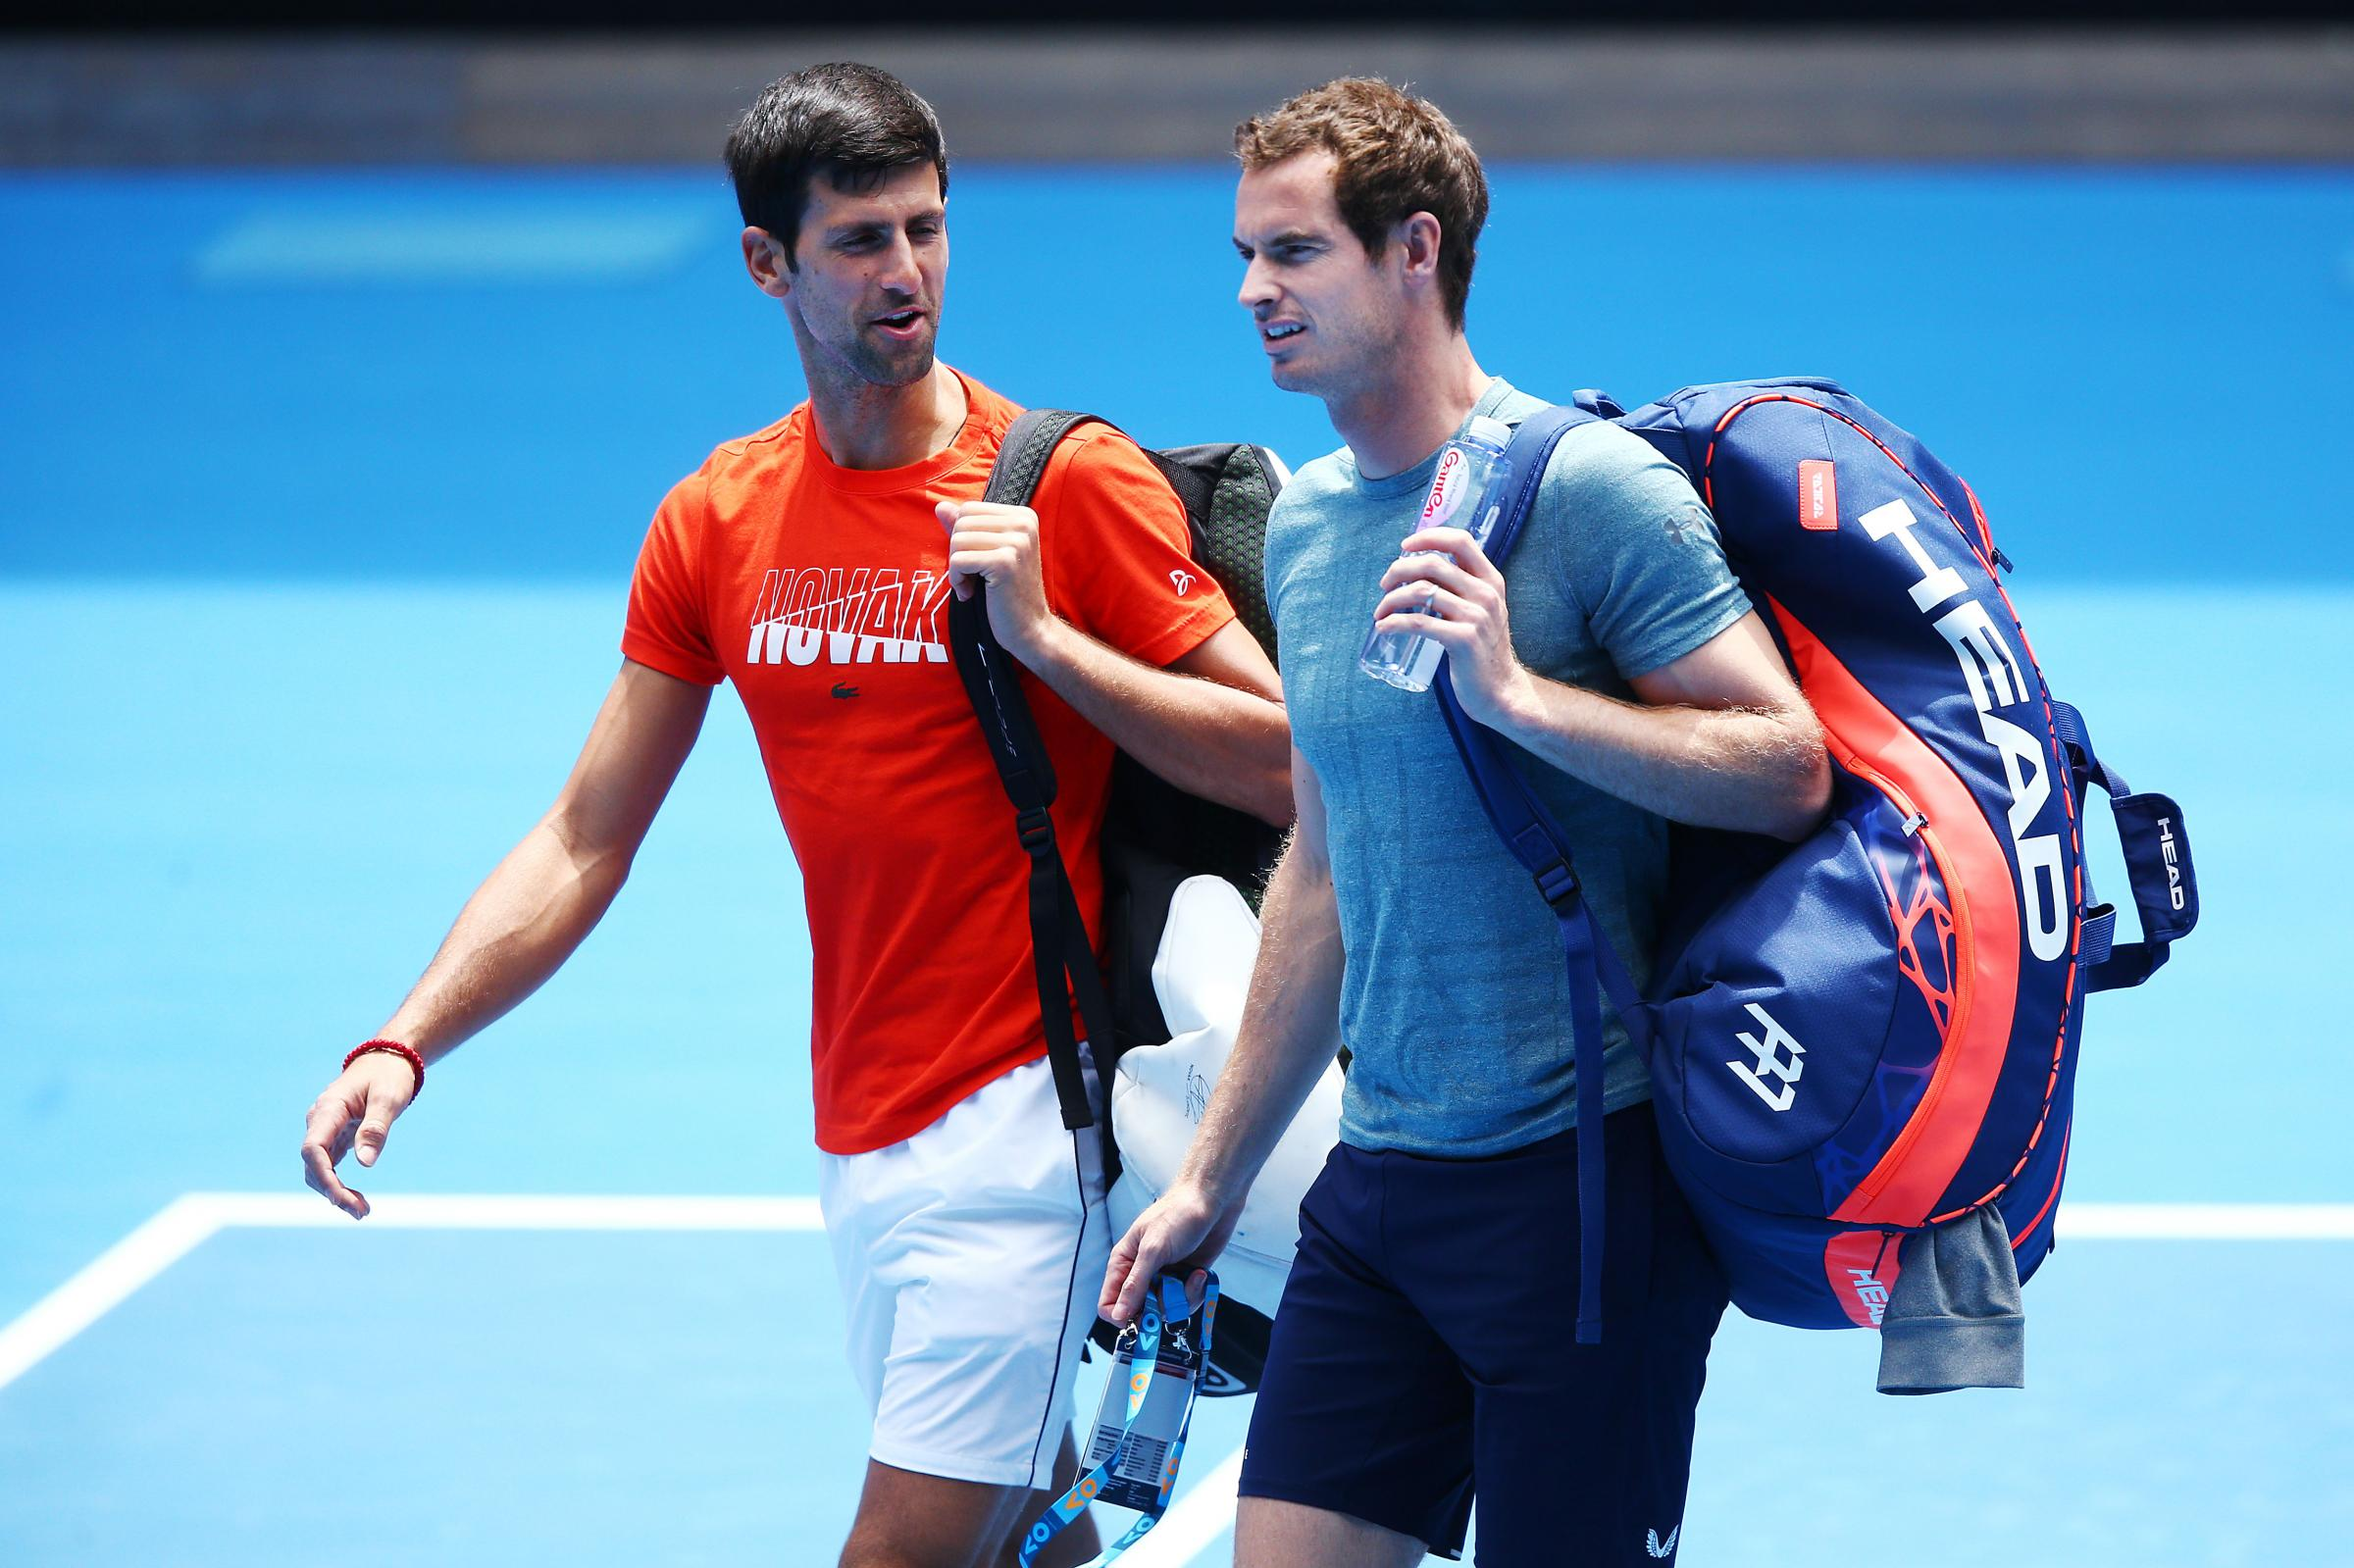 ***BESTPIX*** MELBOURNE, AUSTRALIA - JANUARY 10: Novak Djokovic of Serbia talks with Andy Murray of Great Britain before their practice match ahead of the 2019 Australian Open at Melbourne Park on January 10, 2019 in Melbourne, Australia. (Photo by Michae